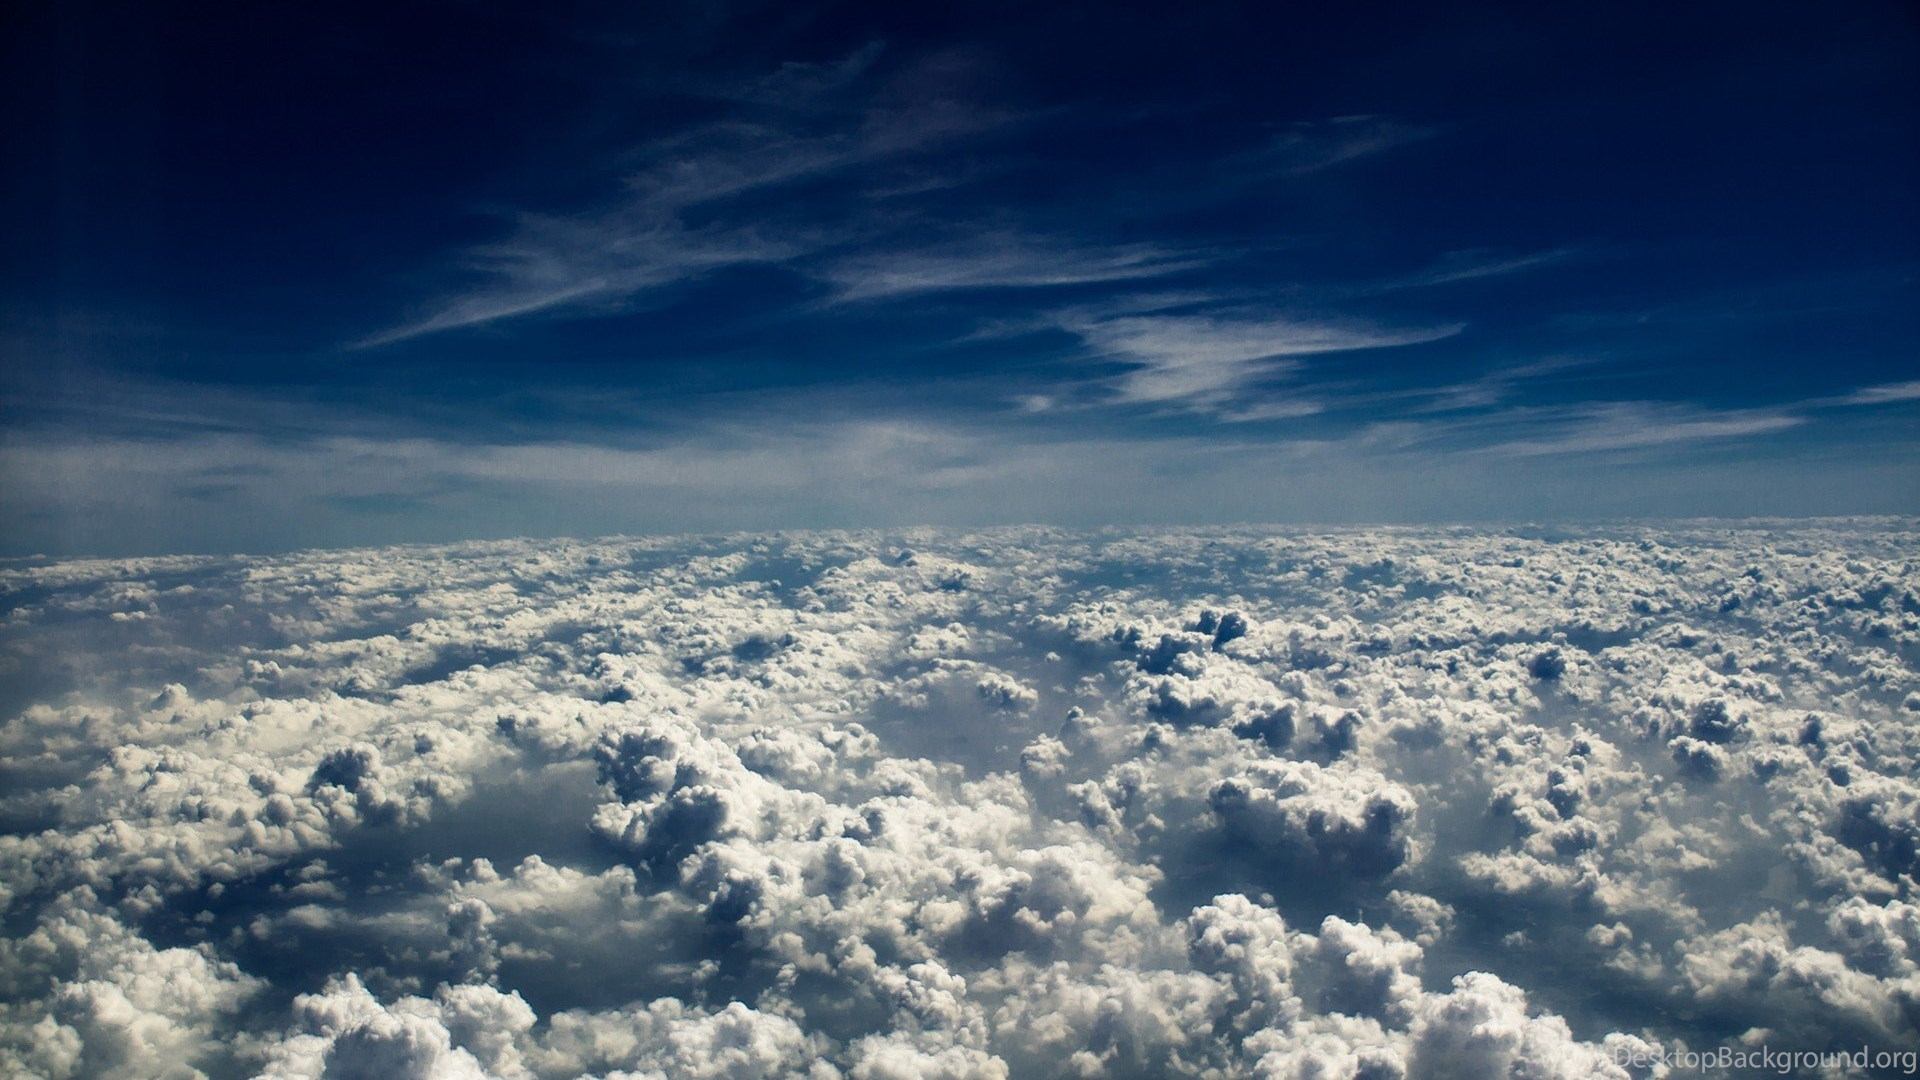 Sky Cloud Wallpapers Hd: Sky: Clouds Sky Nature Sun Rain Wallpapers HD For High